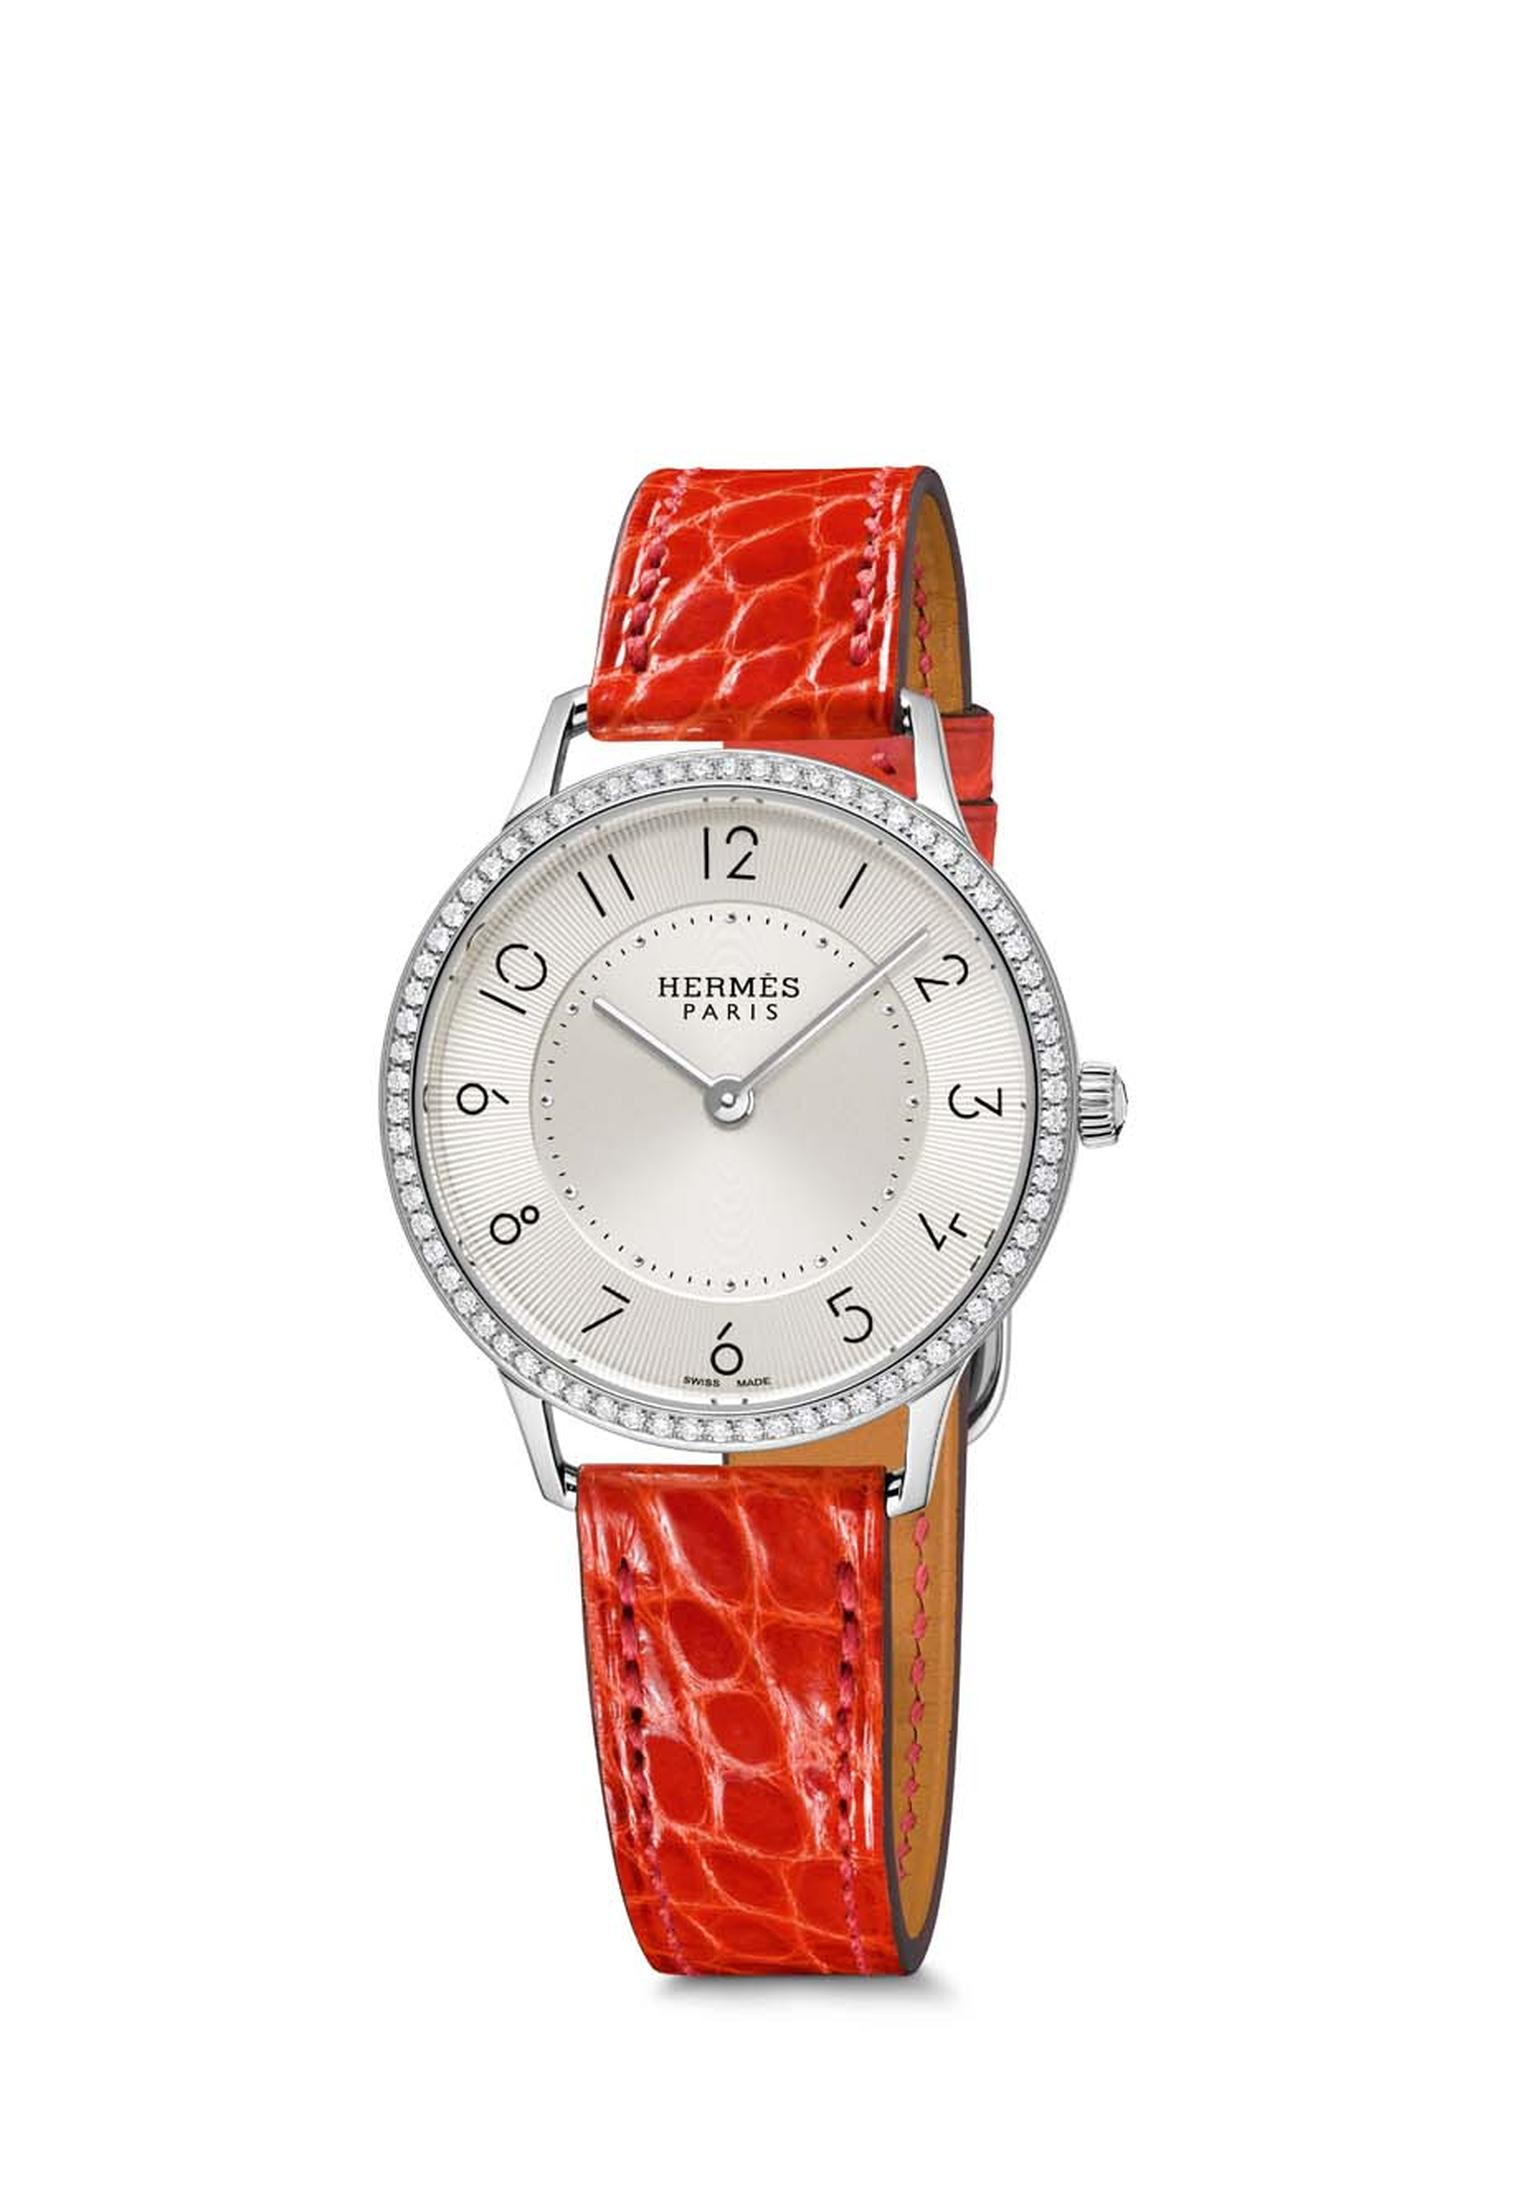 Slim d'Hermès watch in a 32mm stainless steel case with a diamond-set bezel and Swiss quartz movement.